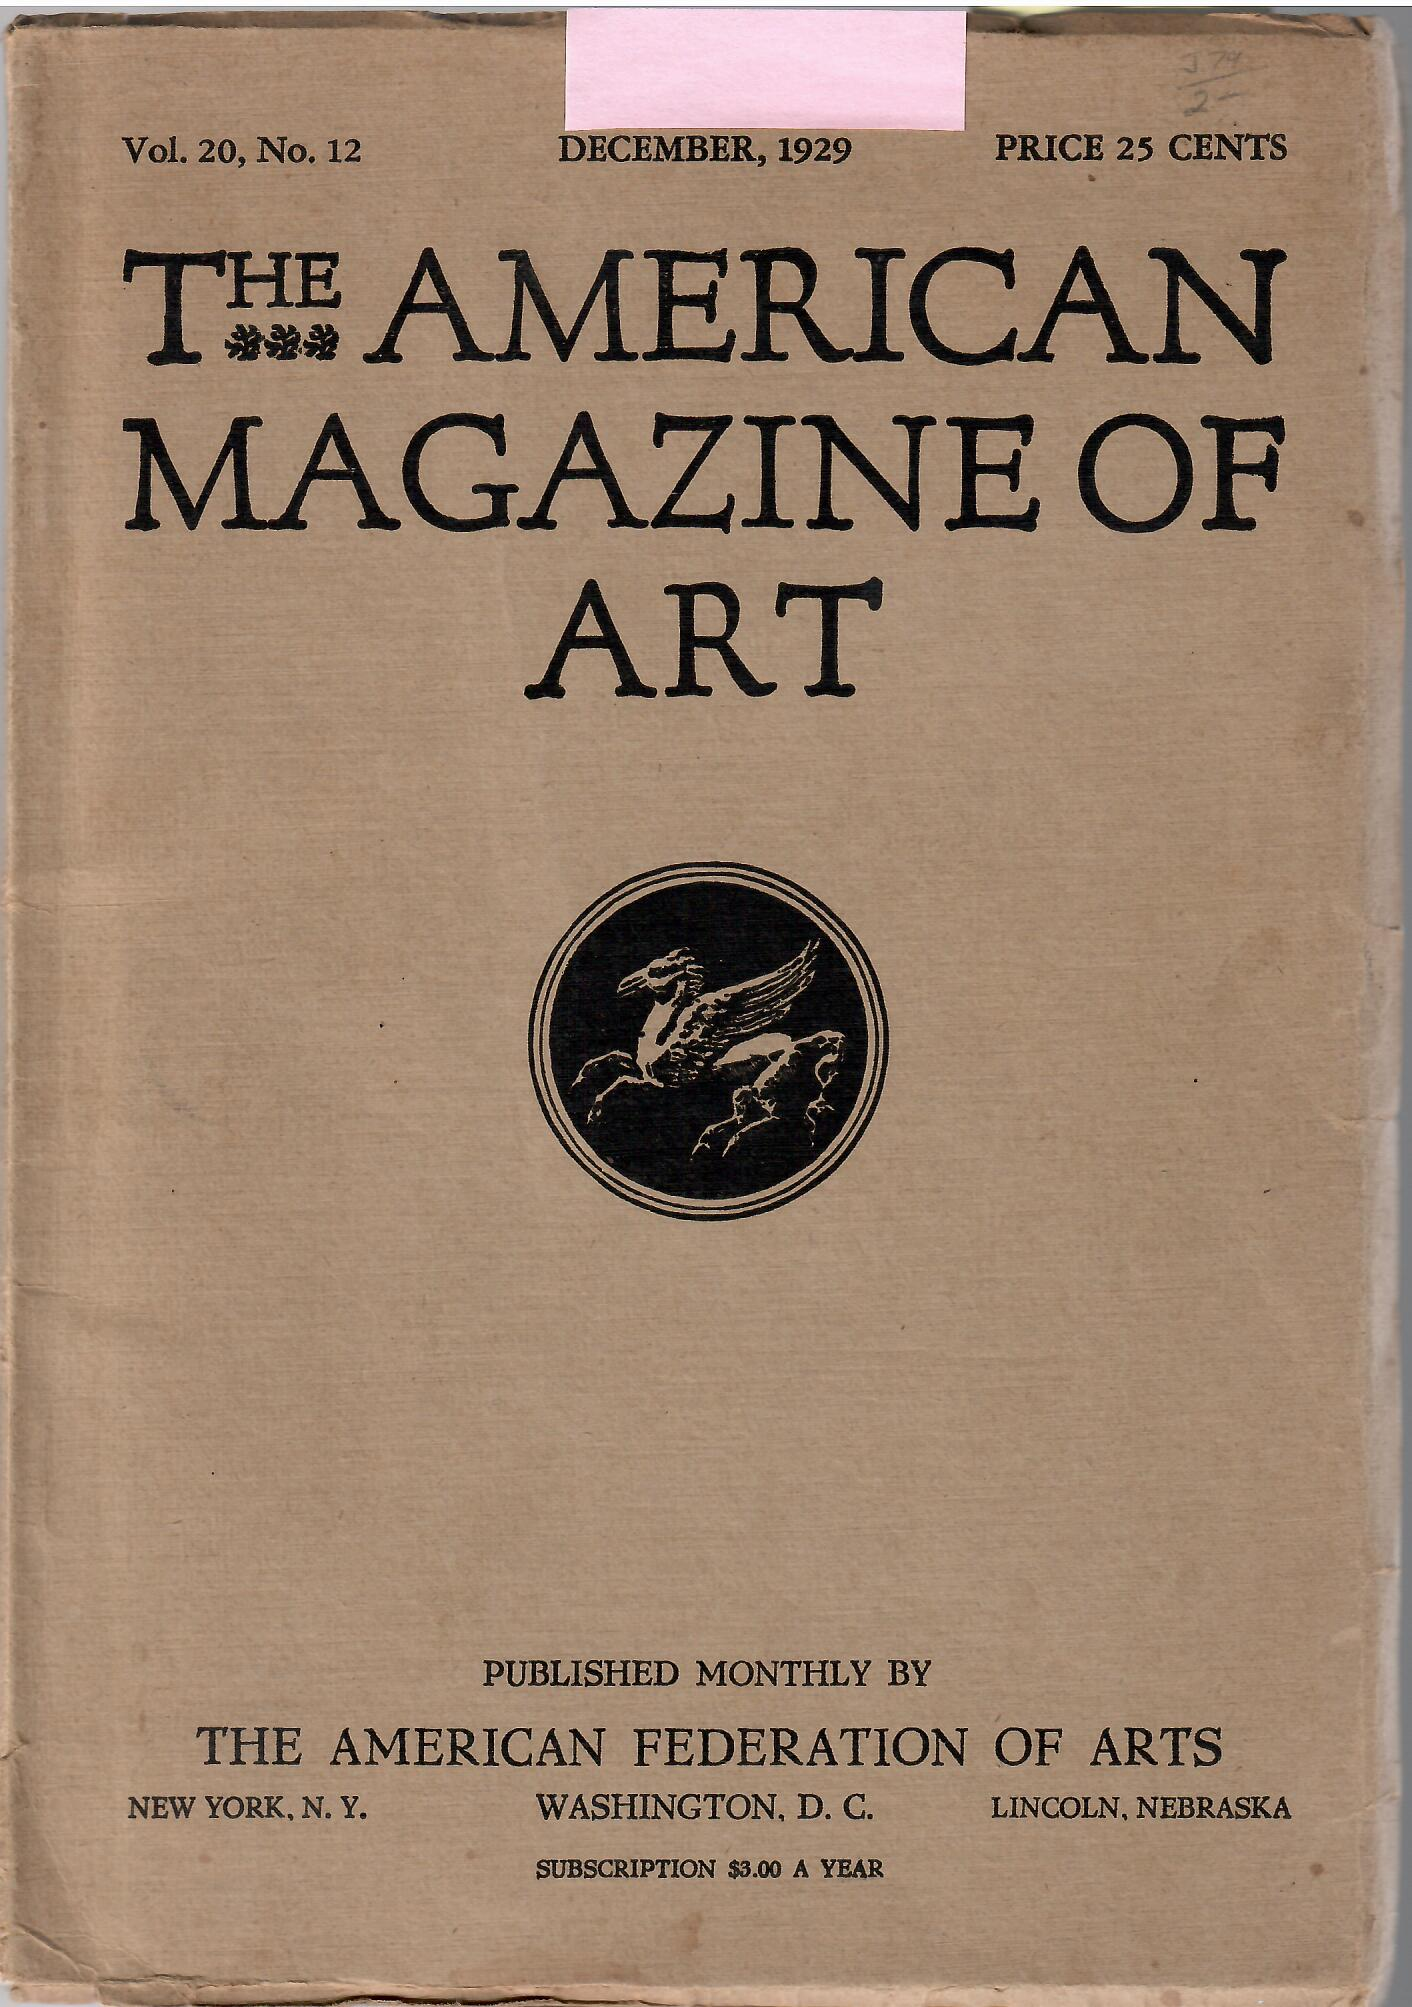 Image for Vol. 20, No. 12, December, 1929; THE AMERICAN MAGAZINE OF ART